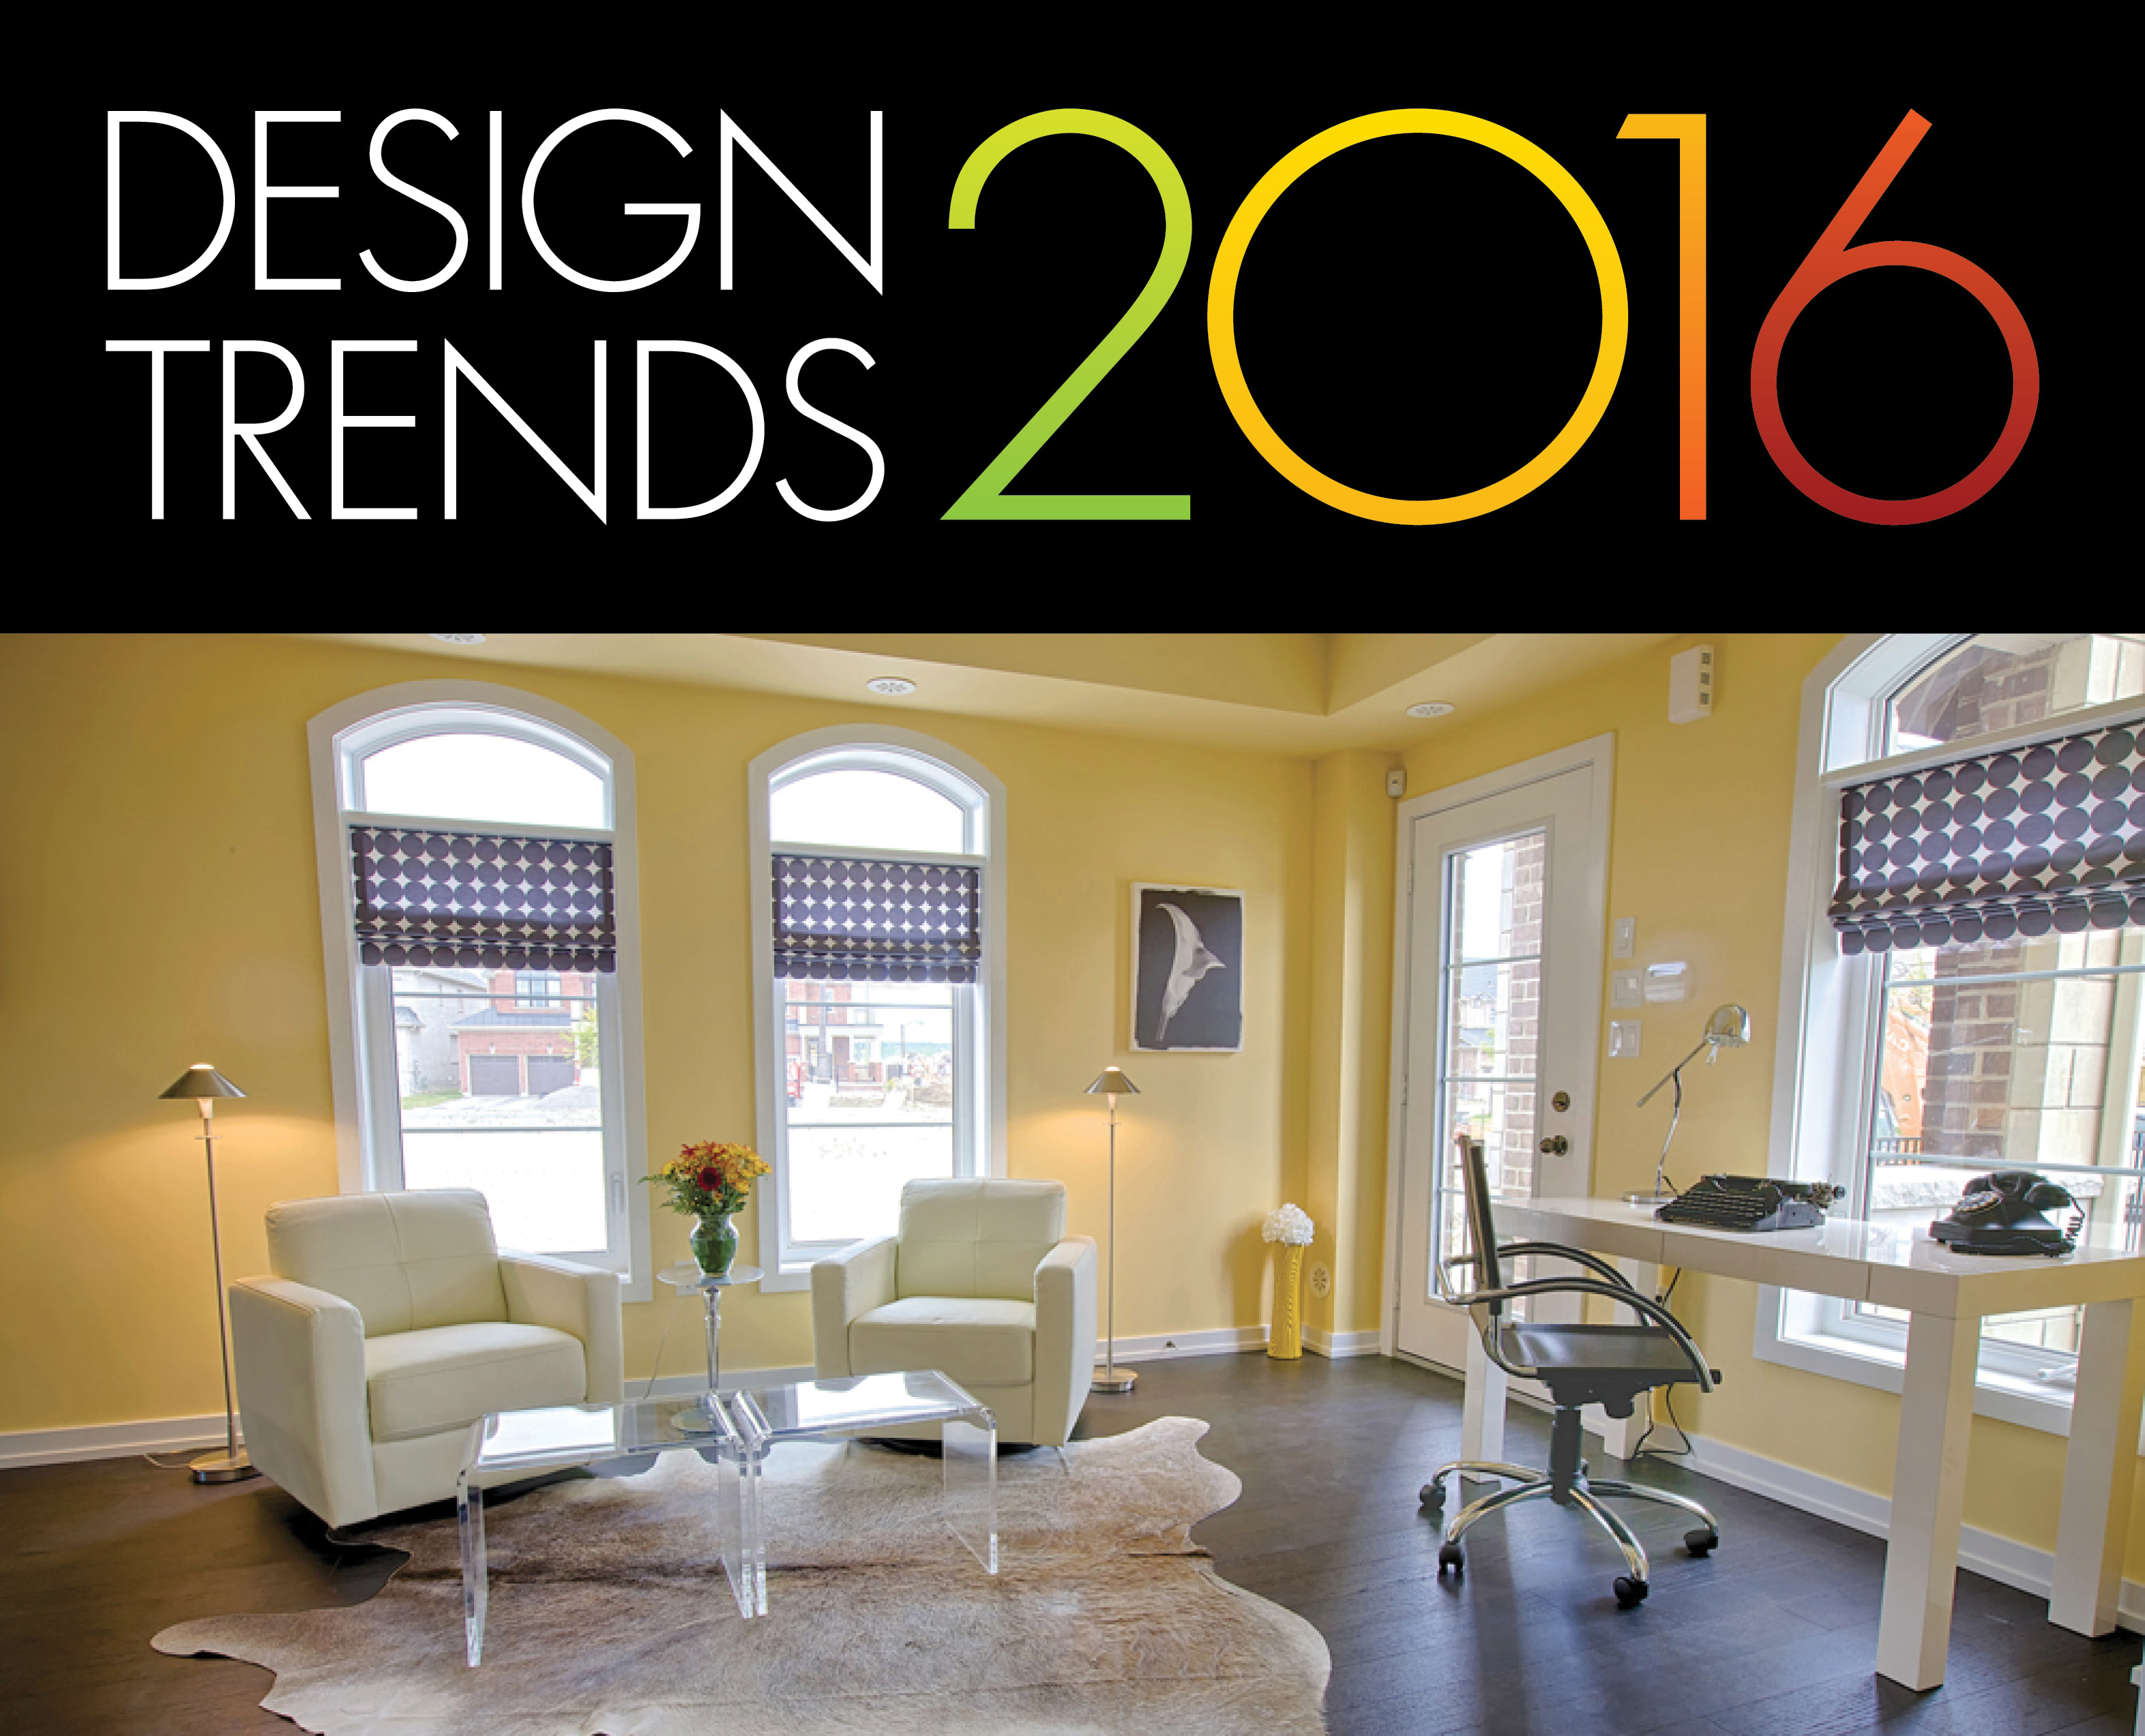 Six home d cor trends for 2016 geranium blog for Best home decor blogs 2015